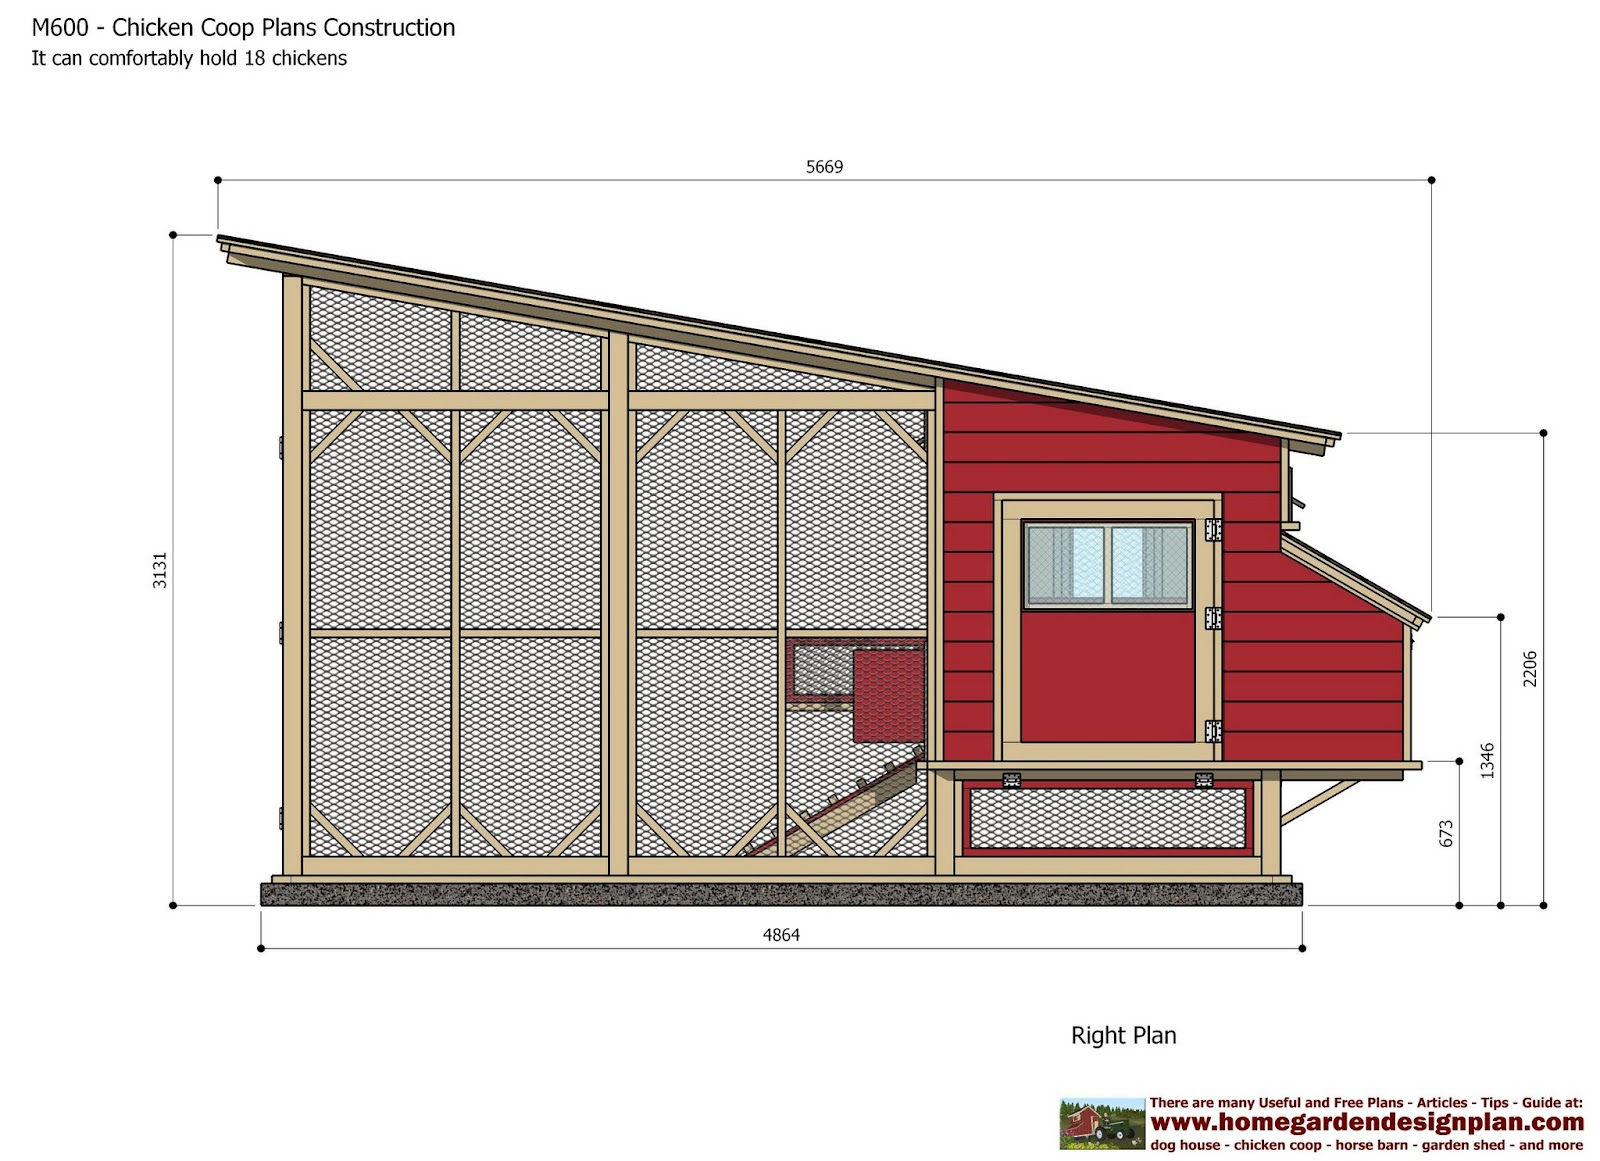 Home garden plans m600 chicken coop plans construction for Build a house online free